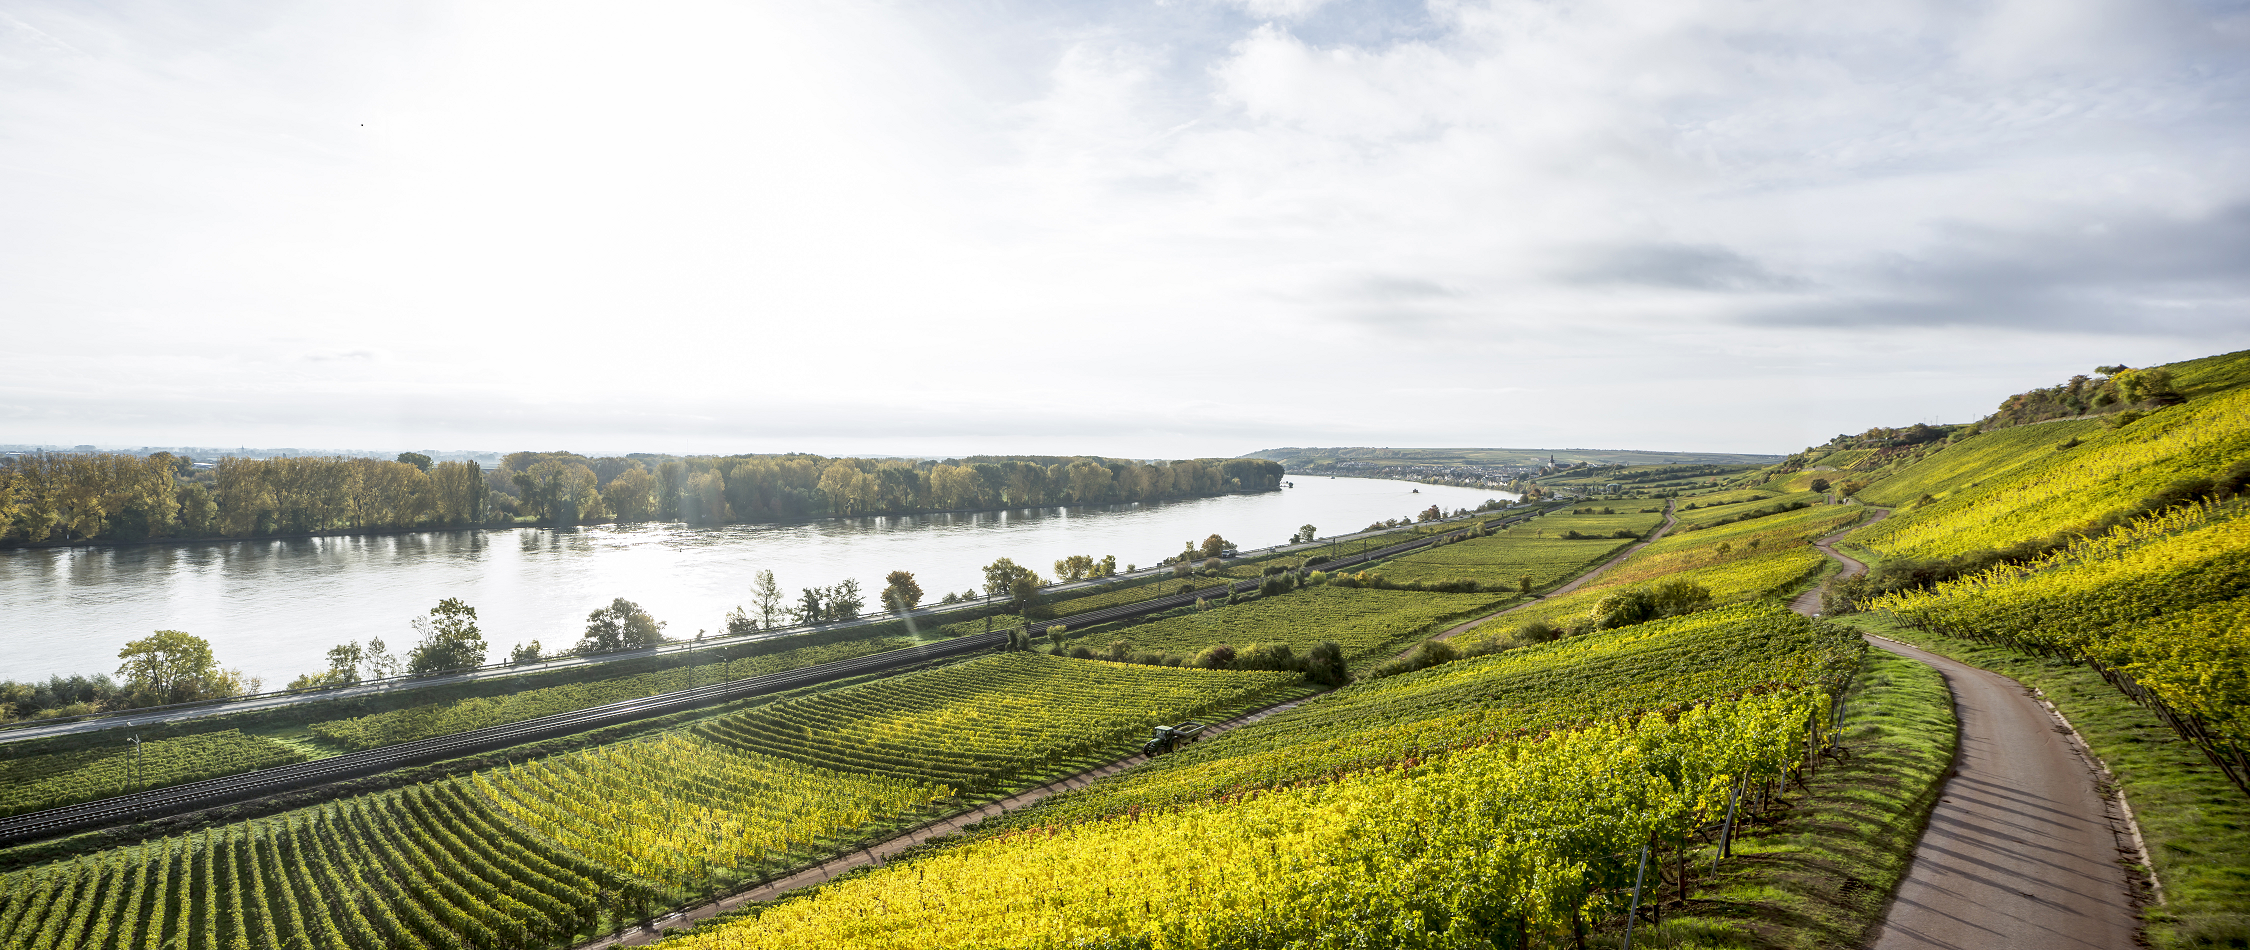 Pettenthal - vineyards next to the Rhine